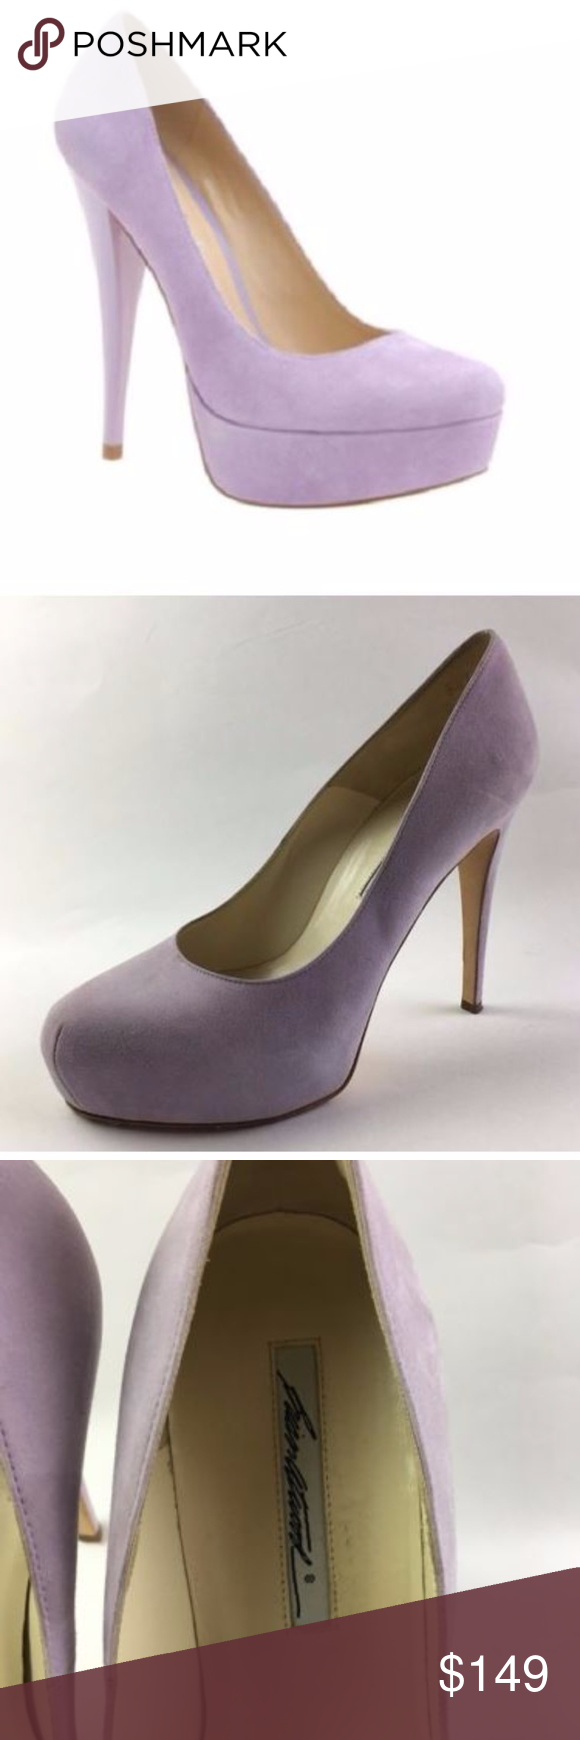 Brian Atwood Lavender Suede Obsession Heels 38.5 Size 38.5  Heel height is 4.75 inches Excellent condition Brian Atwood Shoes Heels